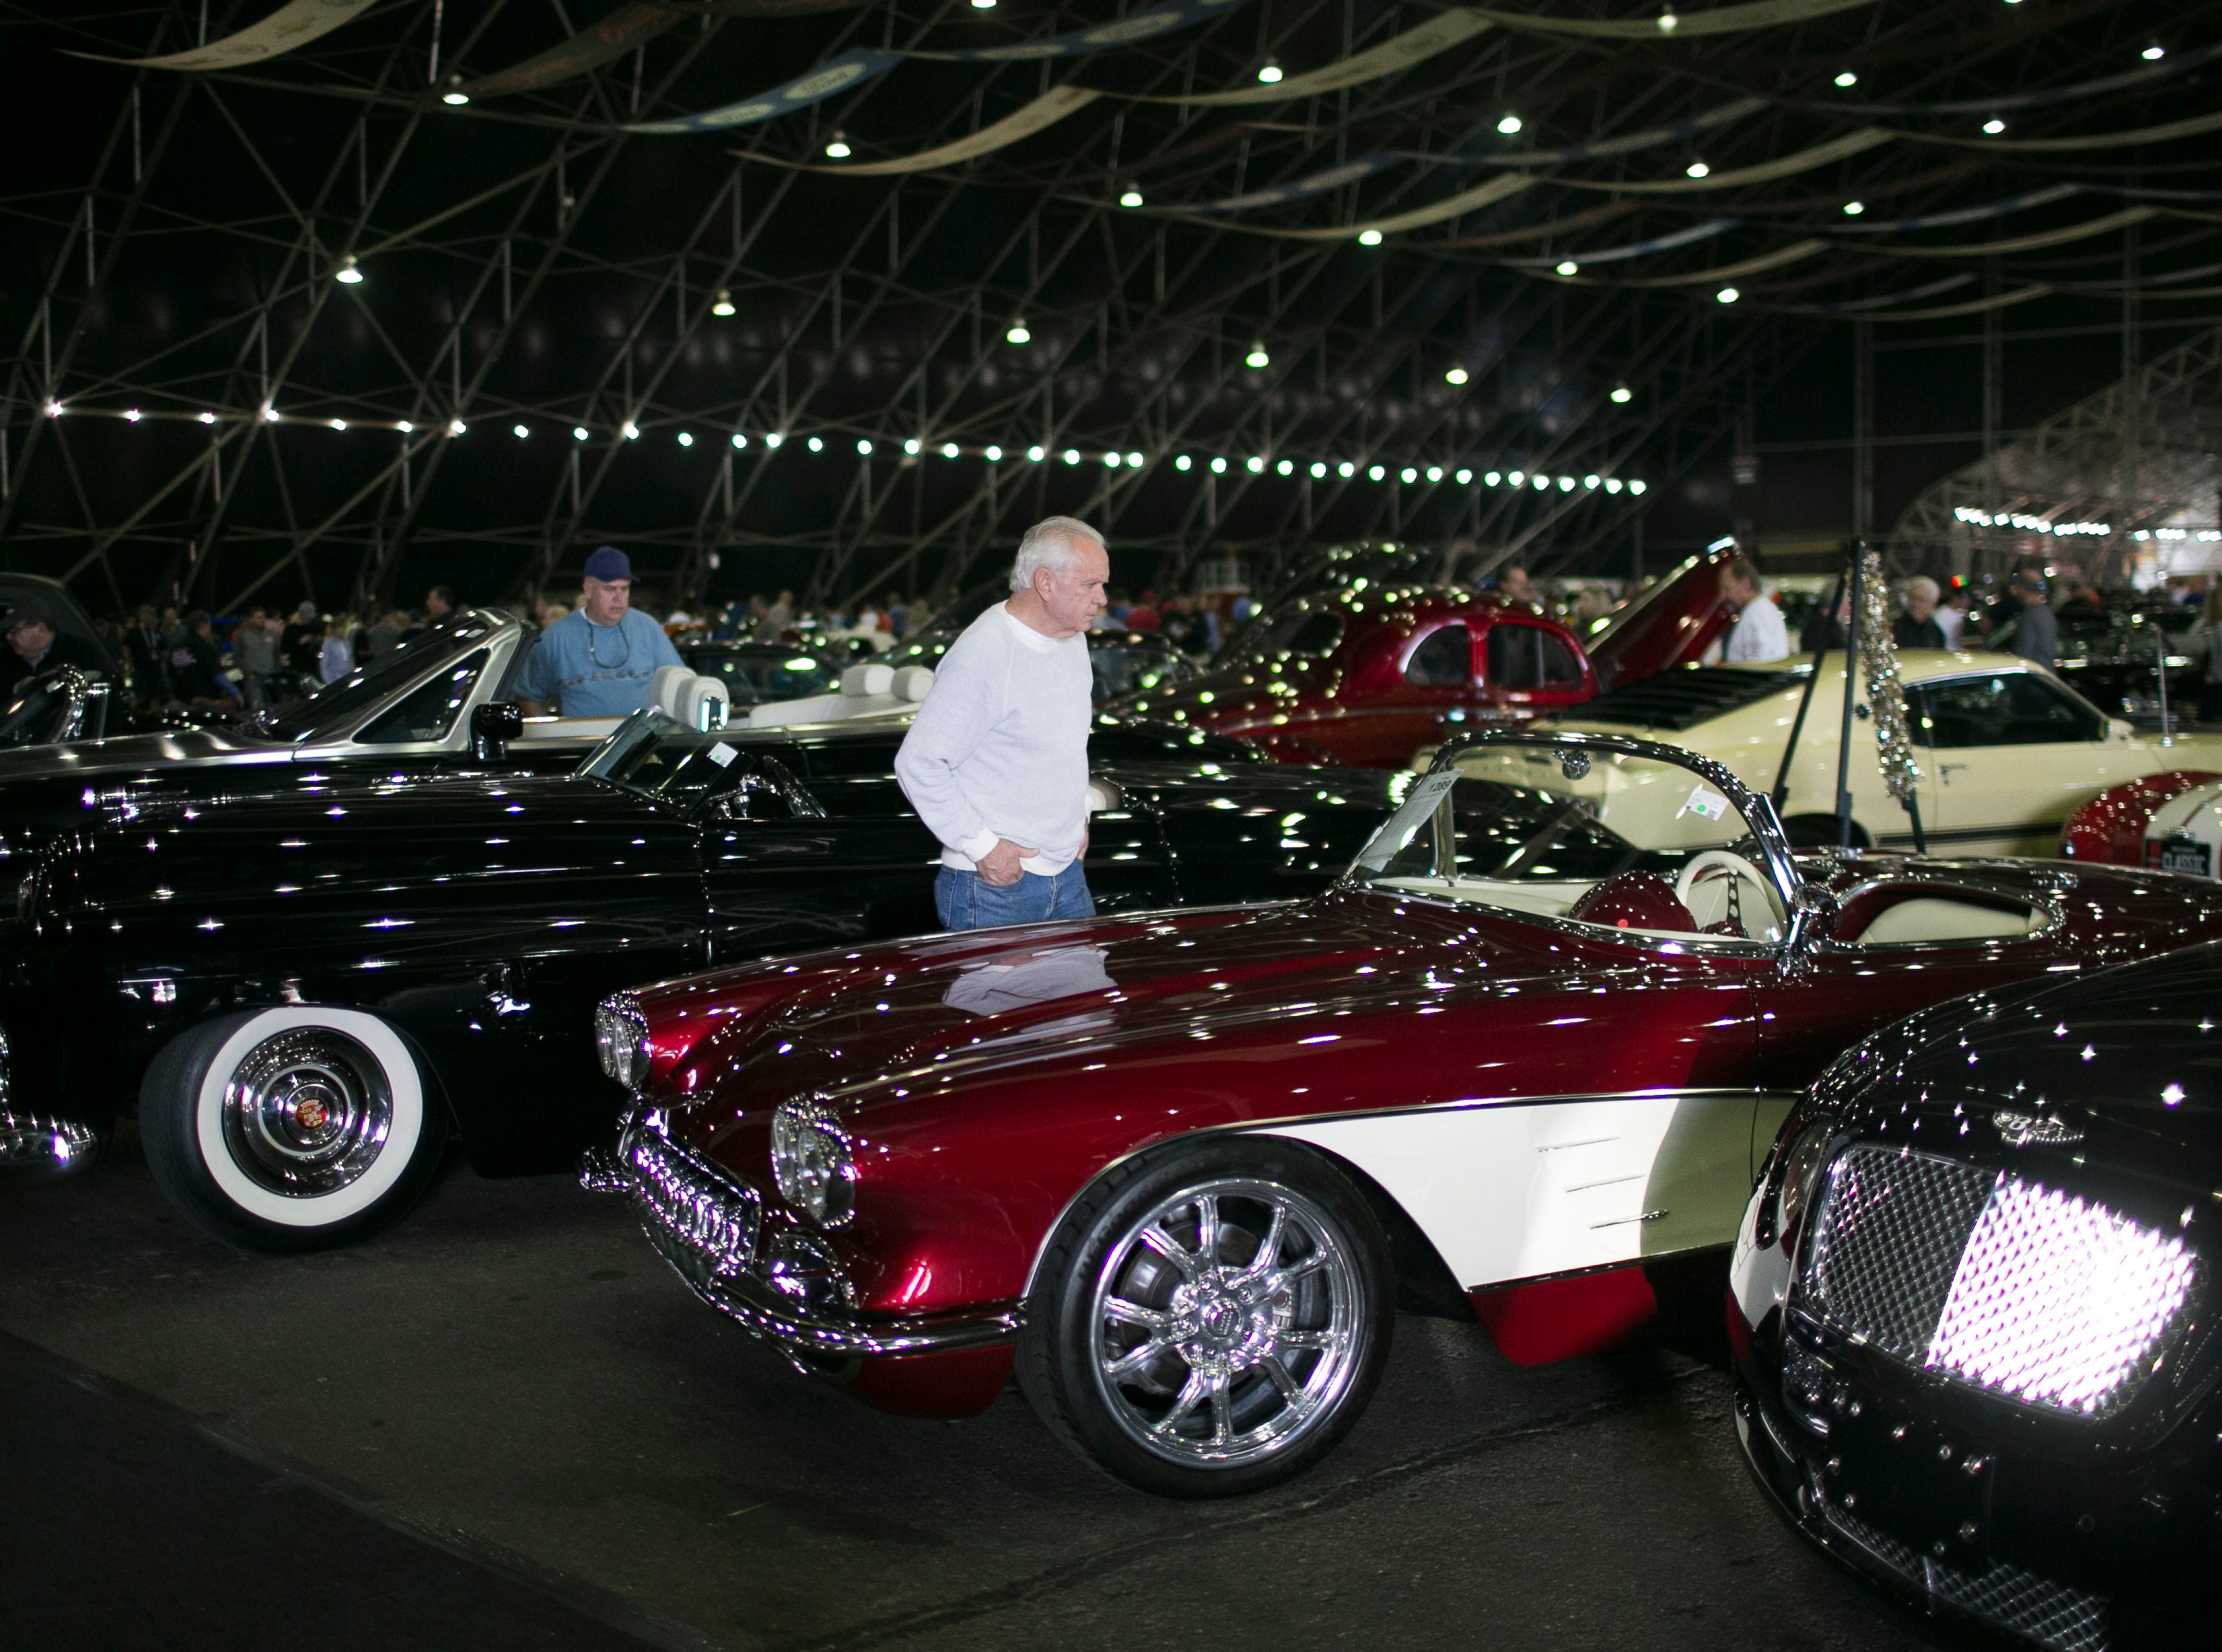 Visitors look at collector cars at Barrett-Jackson collector-car auction at WestWorld on Sat. January 19, 2019 in Scottsdale, Ariz.